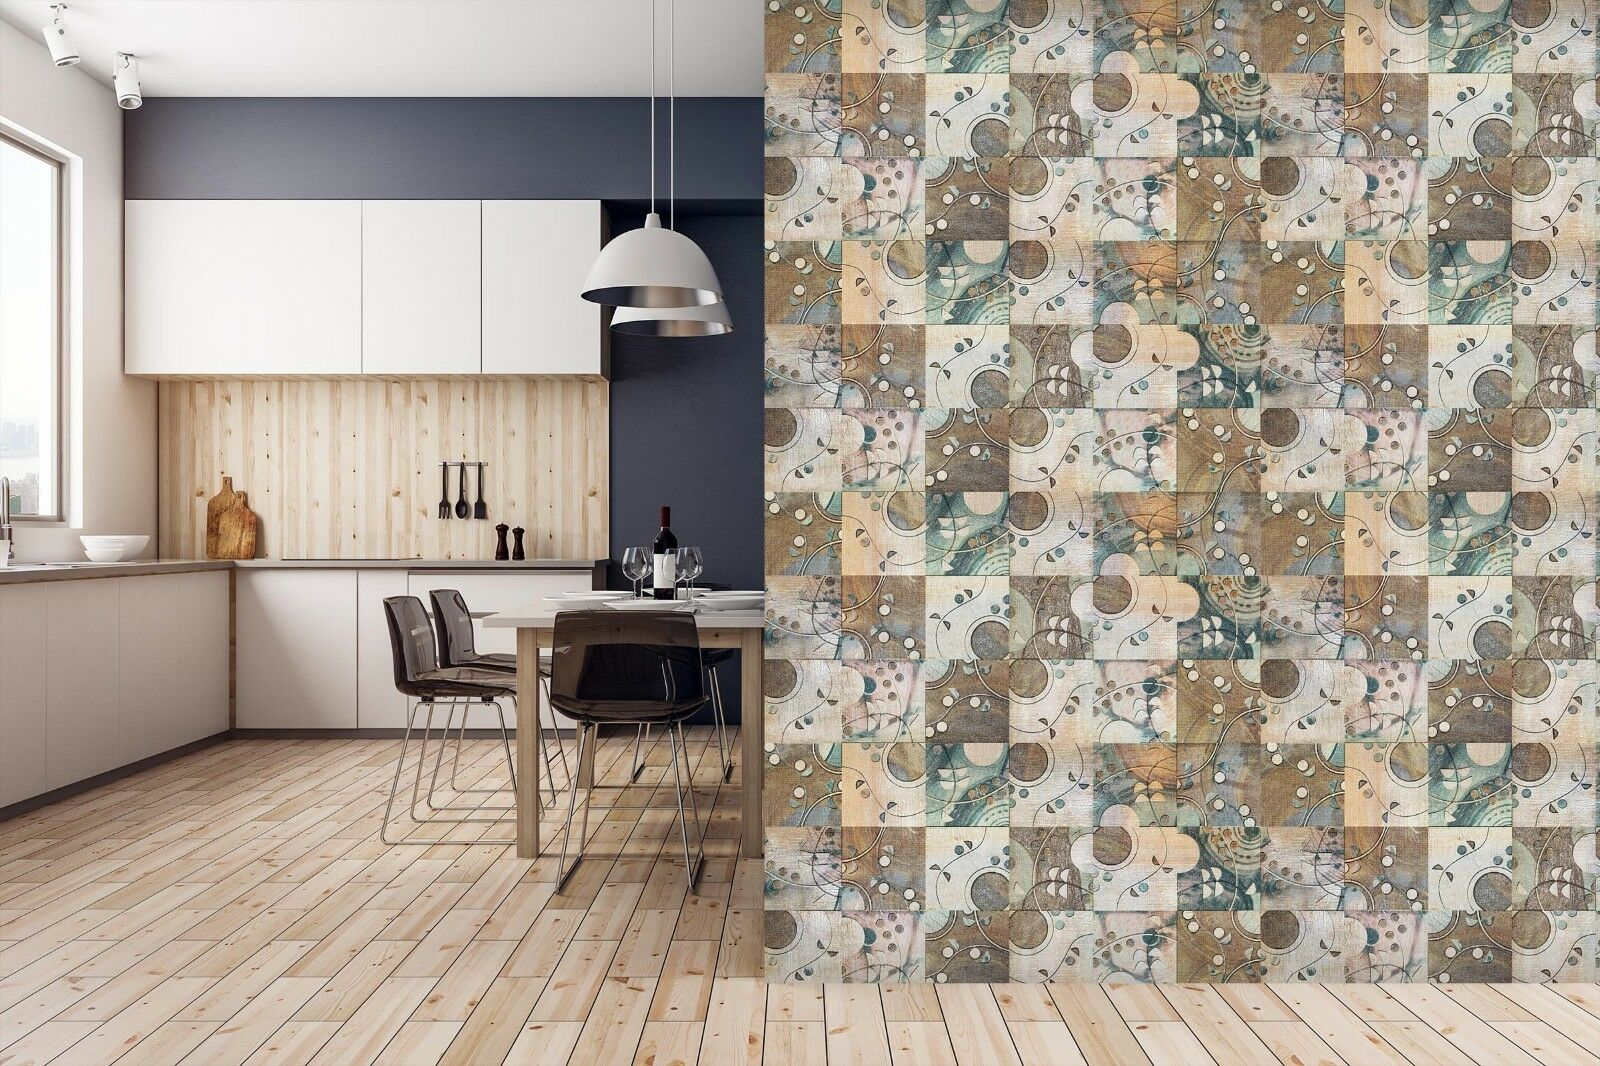 3D Different Patterns 4 Texture Tiles Marble Wall Paper Decal Wallpaper Mural AJ